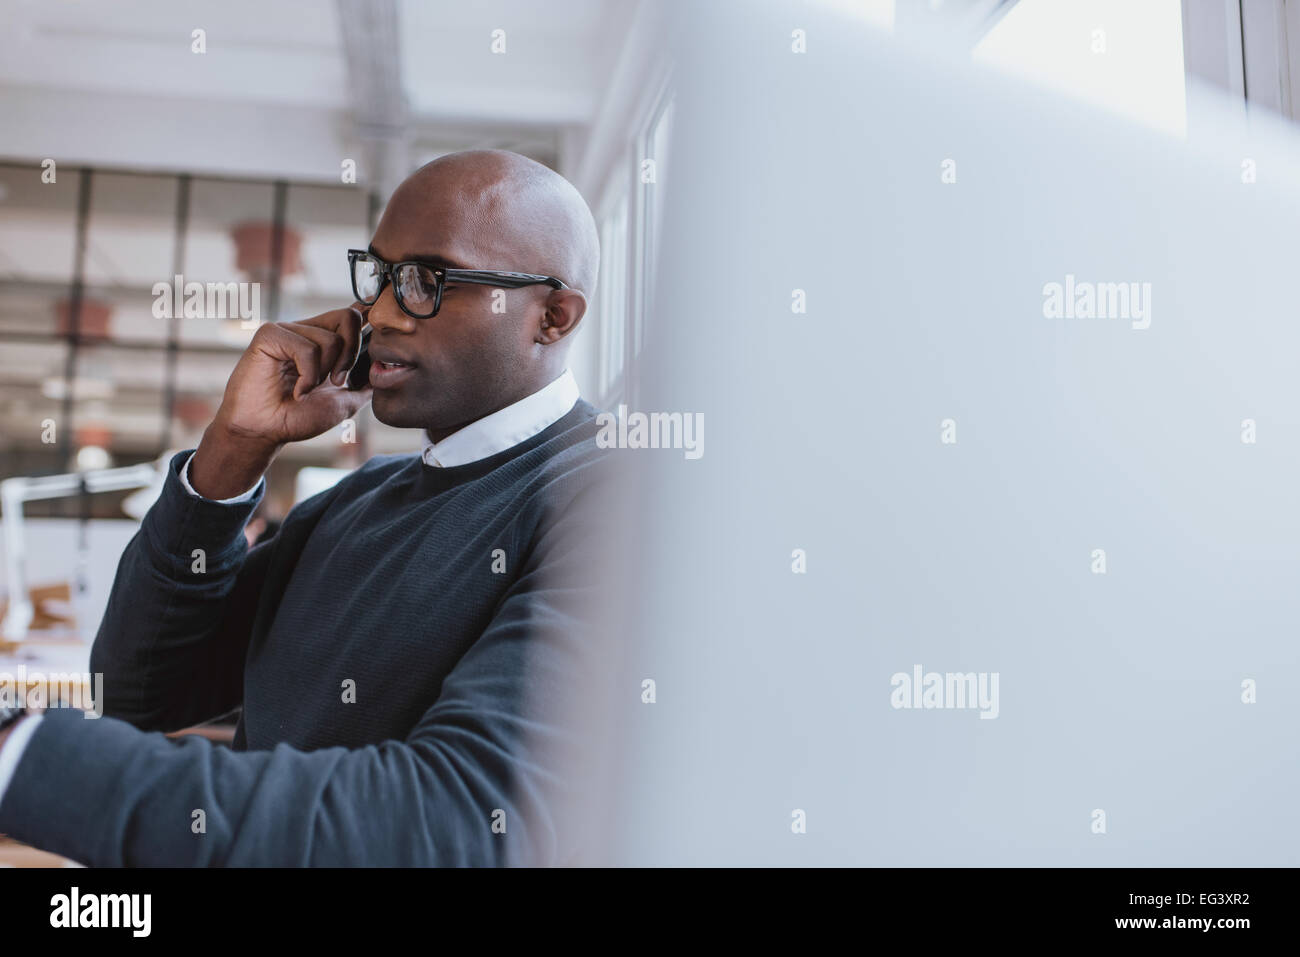 Shot of a young businessman talking on cellphone while at work. Bald african executive in conversation with client - Stock Image